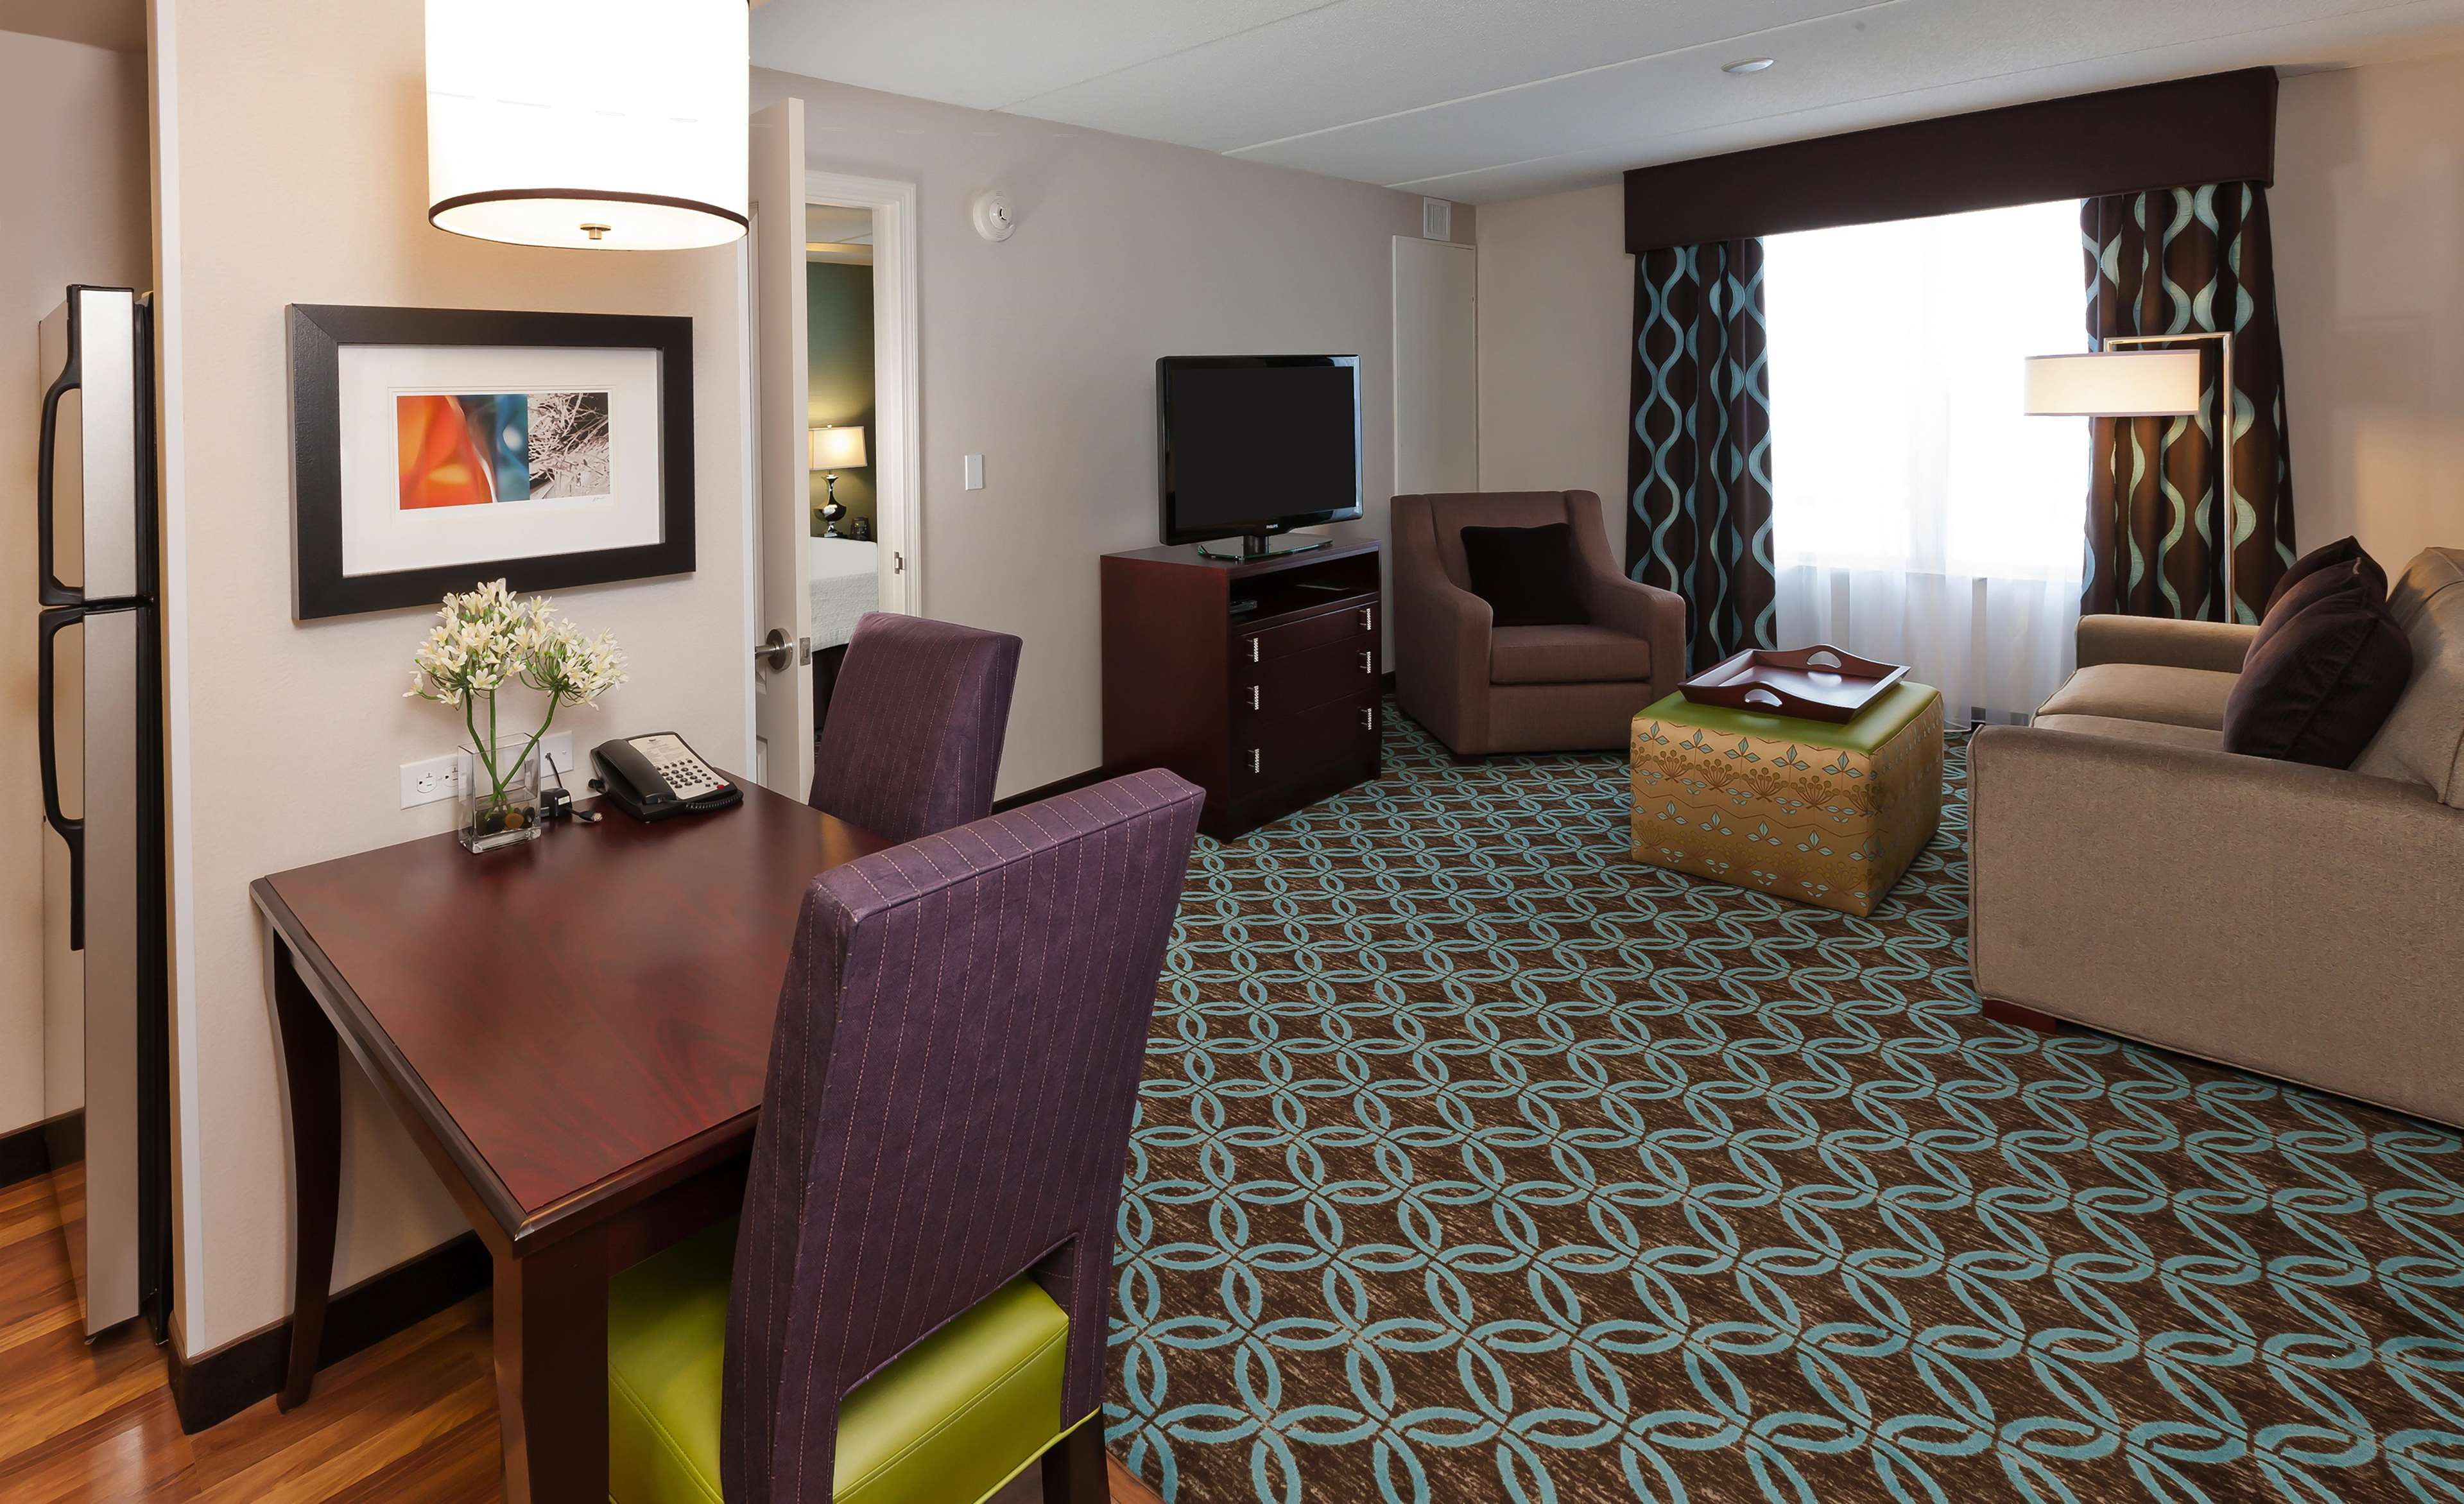 Homewood Suites by Hilton Boston/Canton, MA image 19